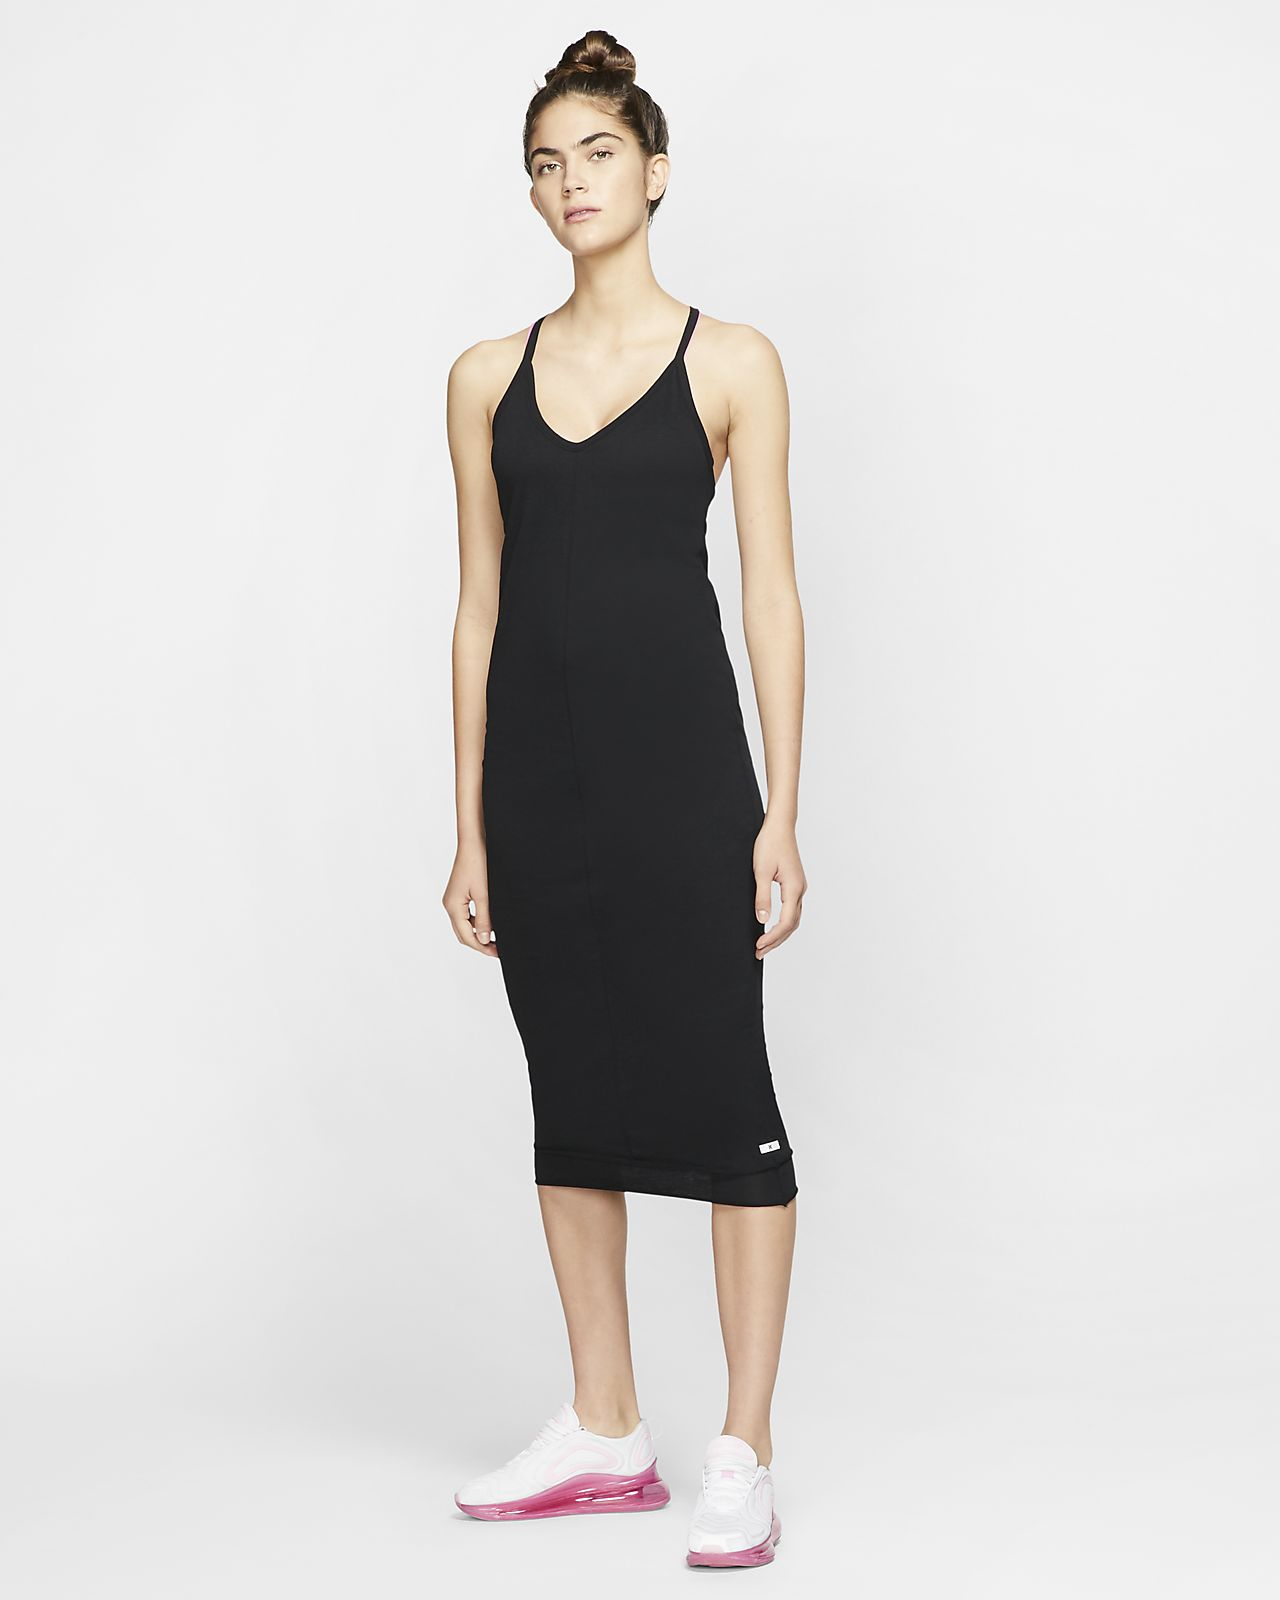 Hurley Dri-FIT Cami Women's Dress